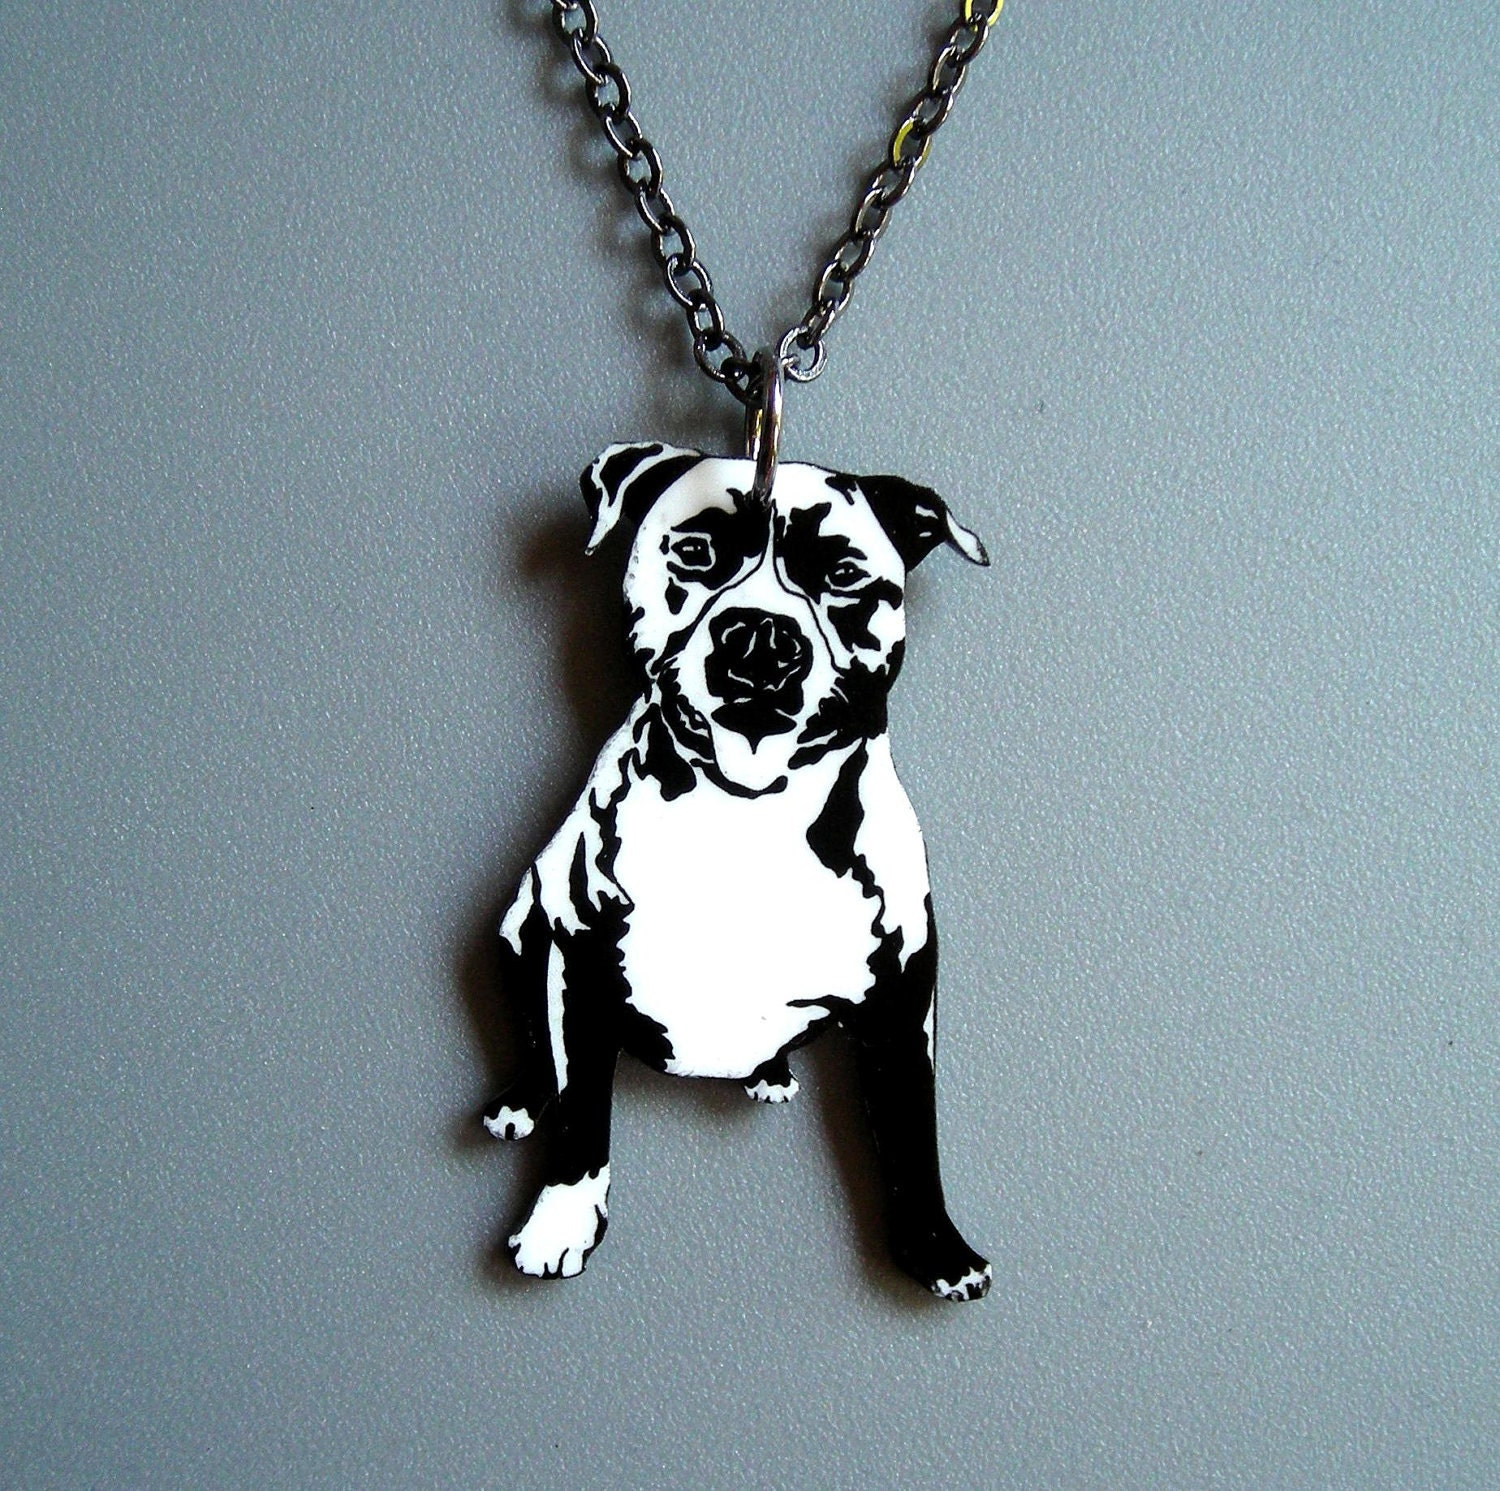 ... dollars from Every necklace sold will go to Villalobos Pit Bull Rescue